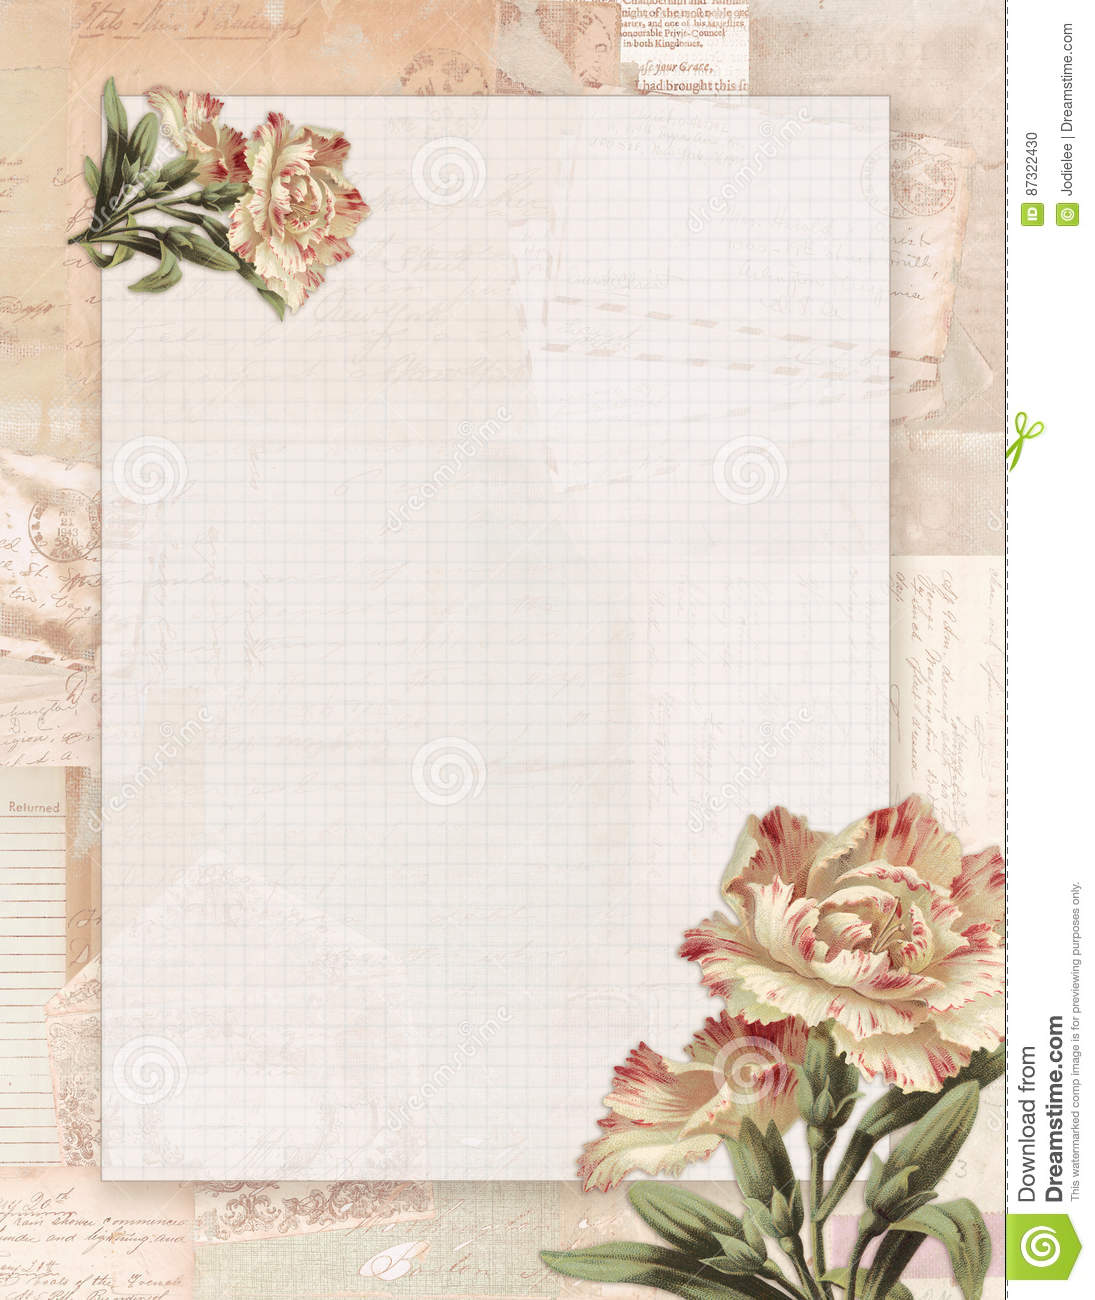 Floral Stationary Kampa Luckincsolutions Org